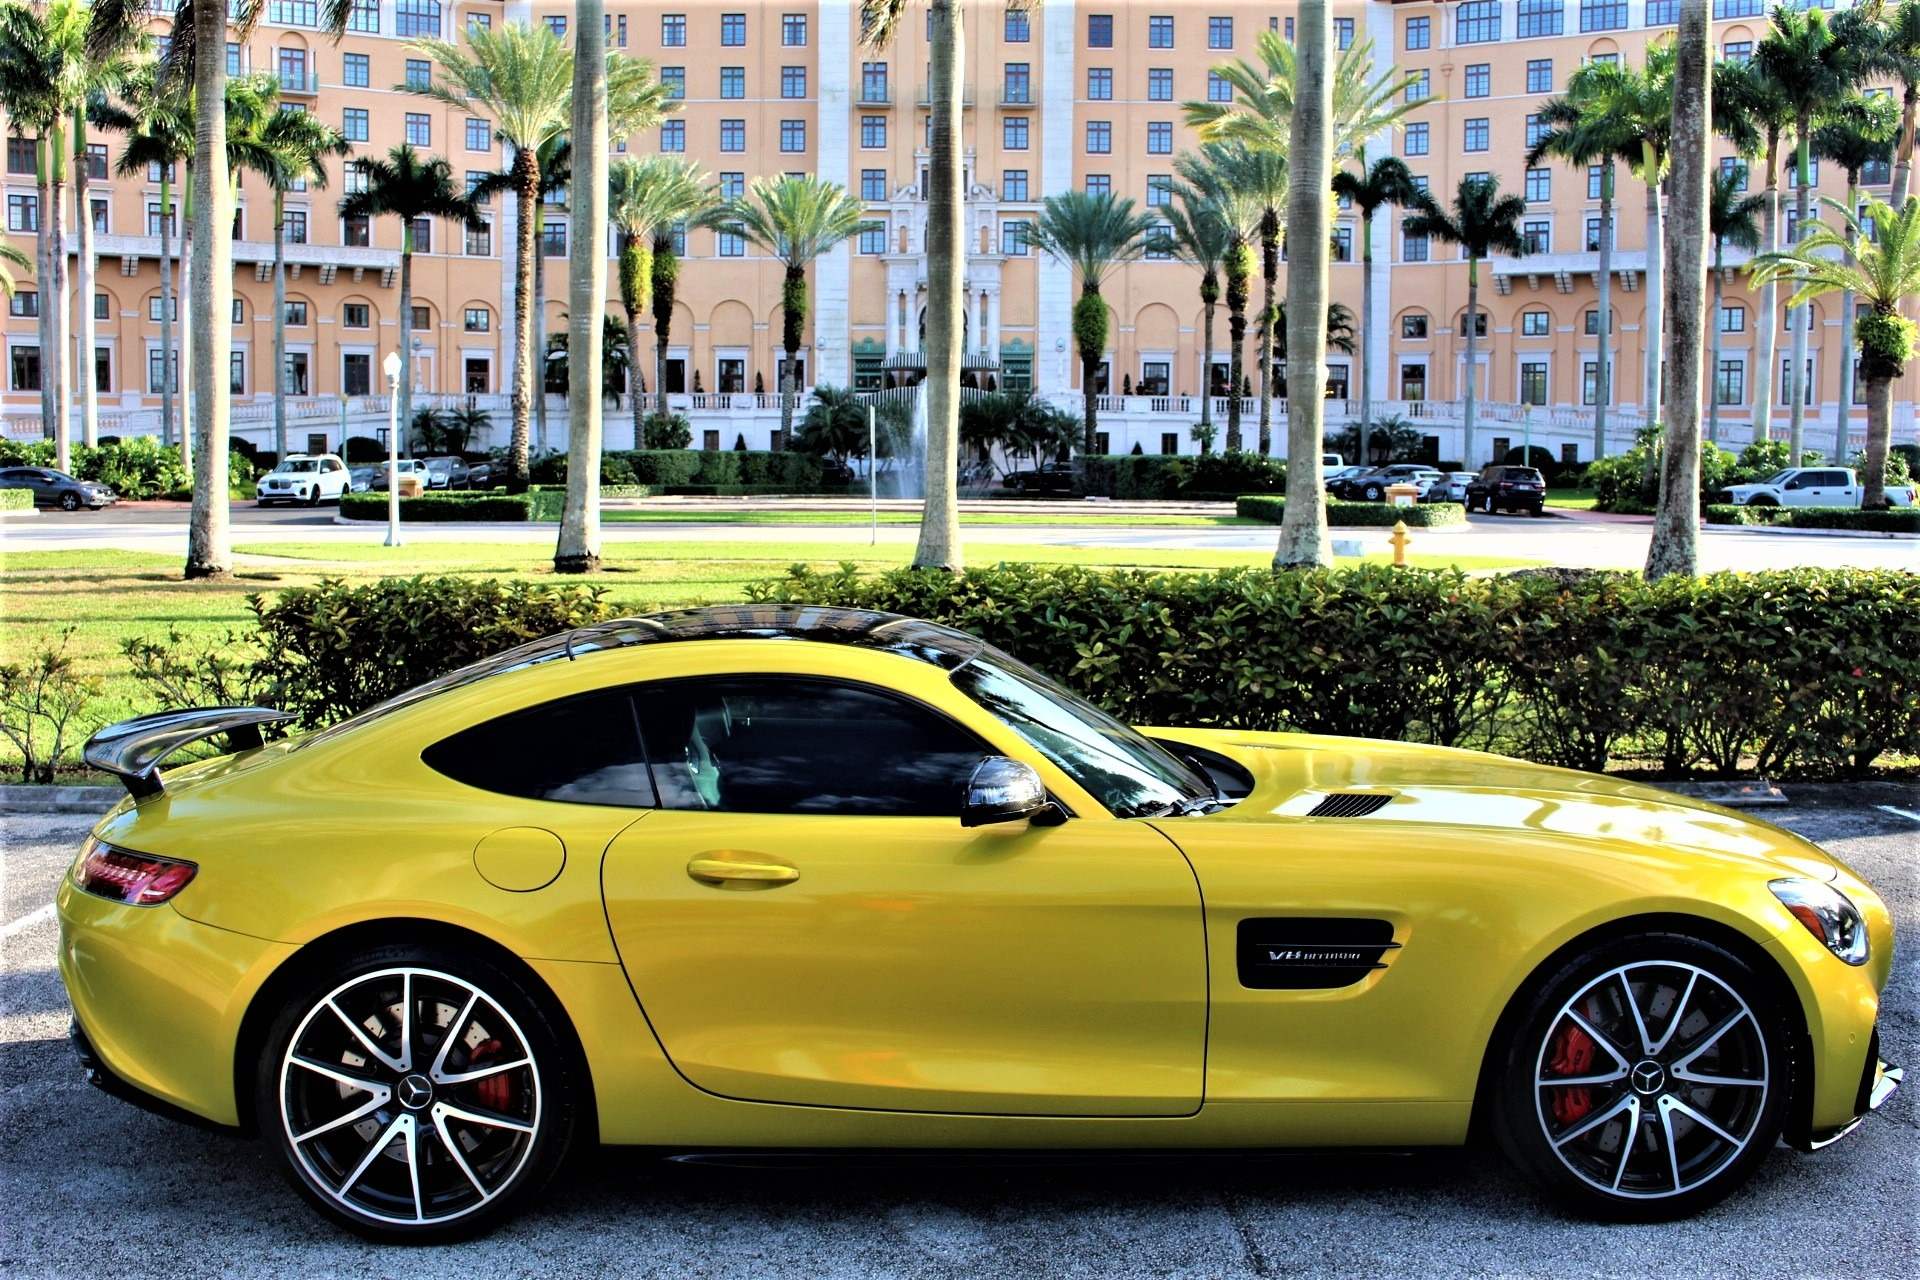 Used 2016 Mercedes-Benz AMG GT S for sale Sold at The Gables Sports Cars in Miami FL 33146 1